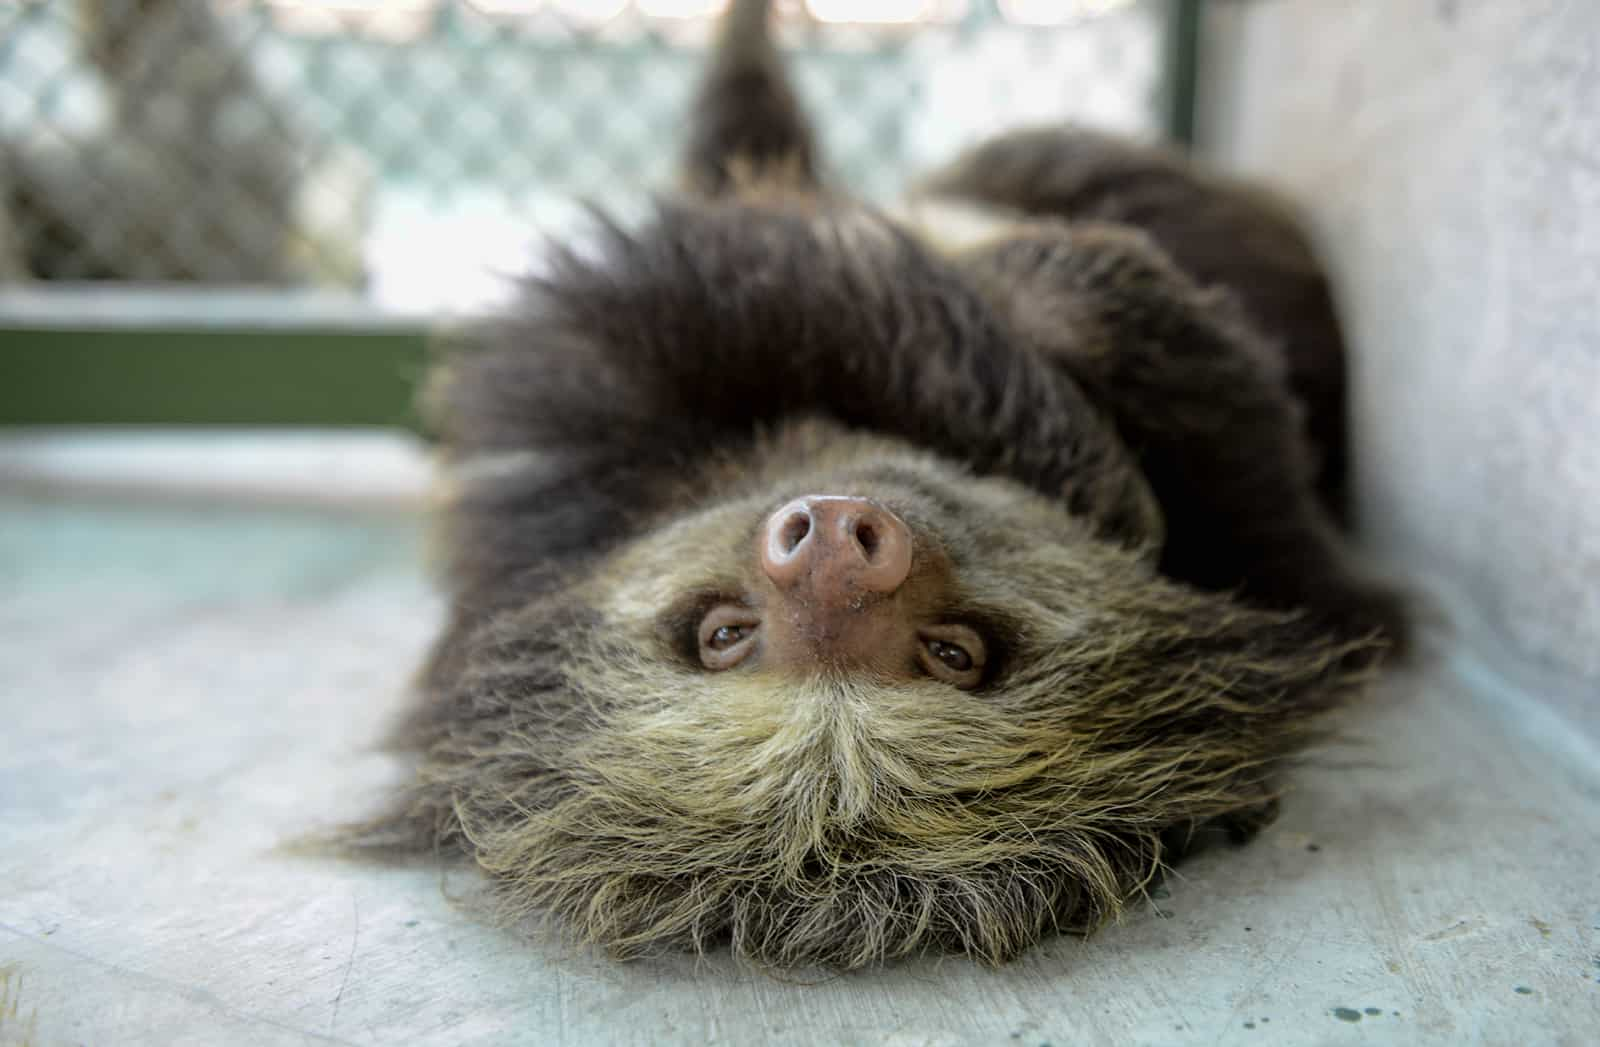 This gross discovery may make you rethink your obsession with sloths